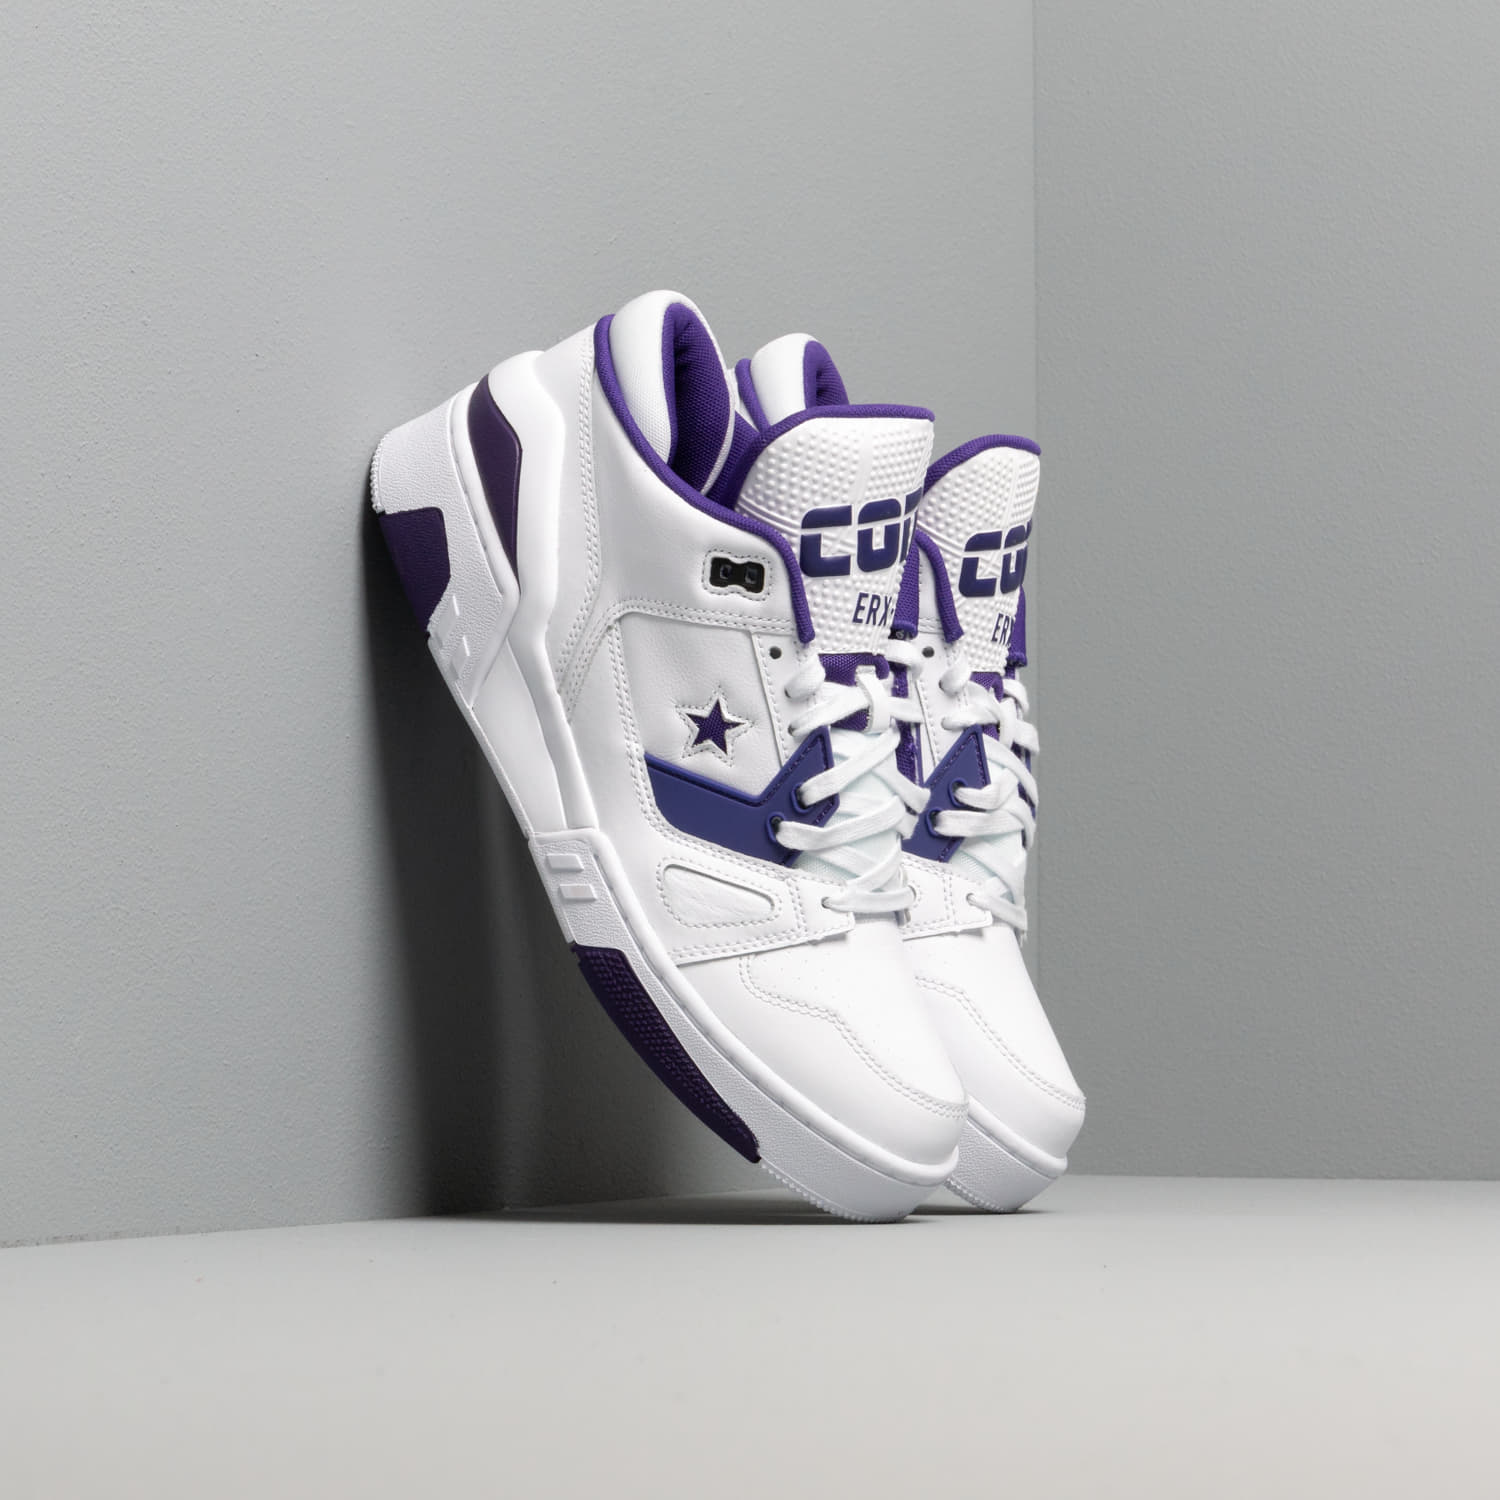 Scarpe e sneaker da uomo Converse Erx 260 Archival Leather White/ Court Purple/ White